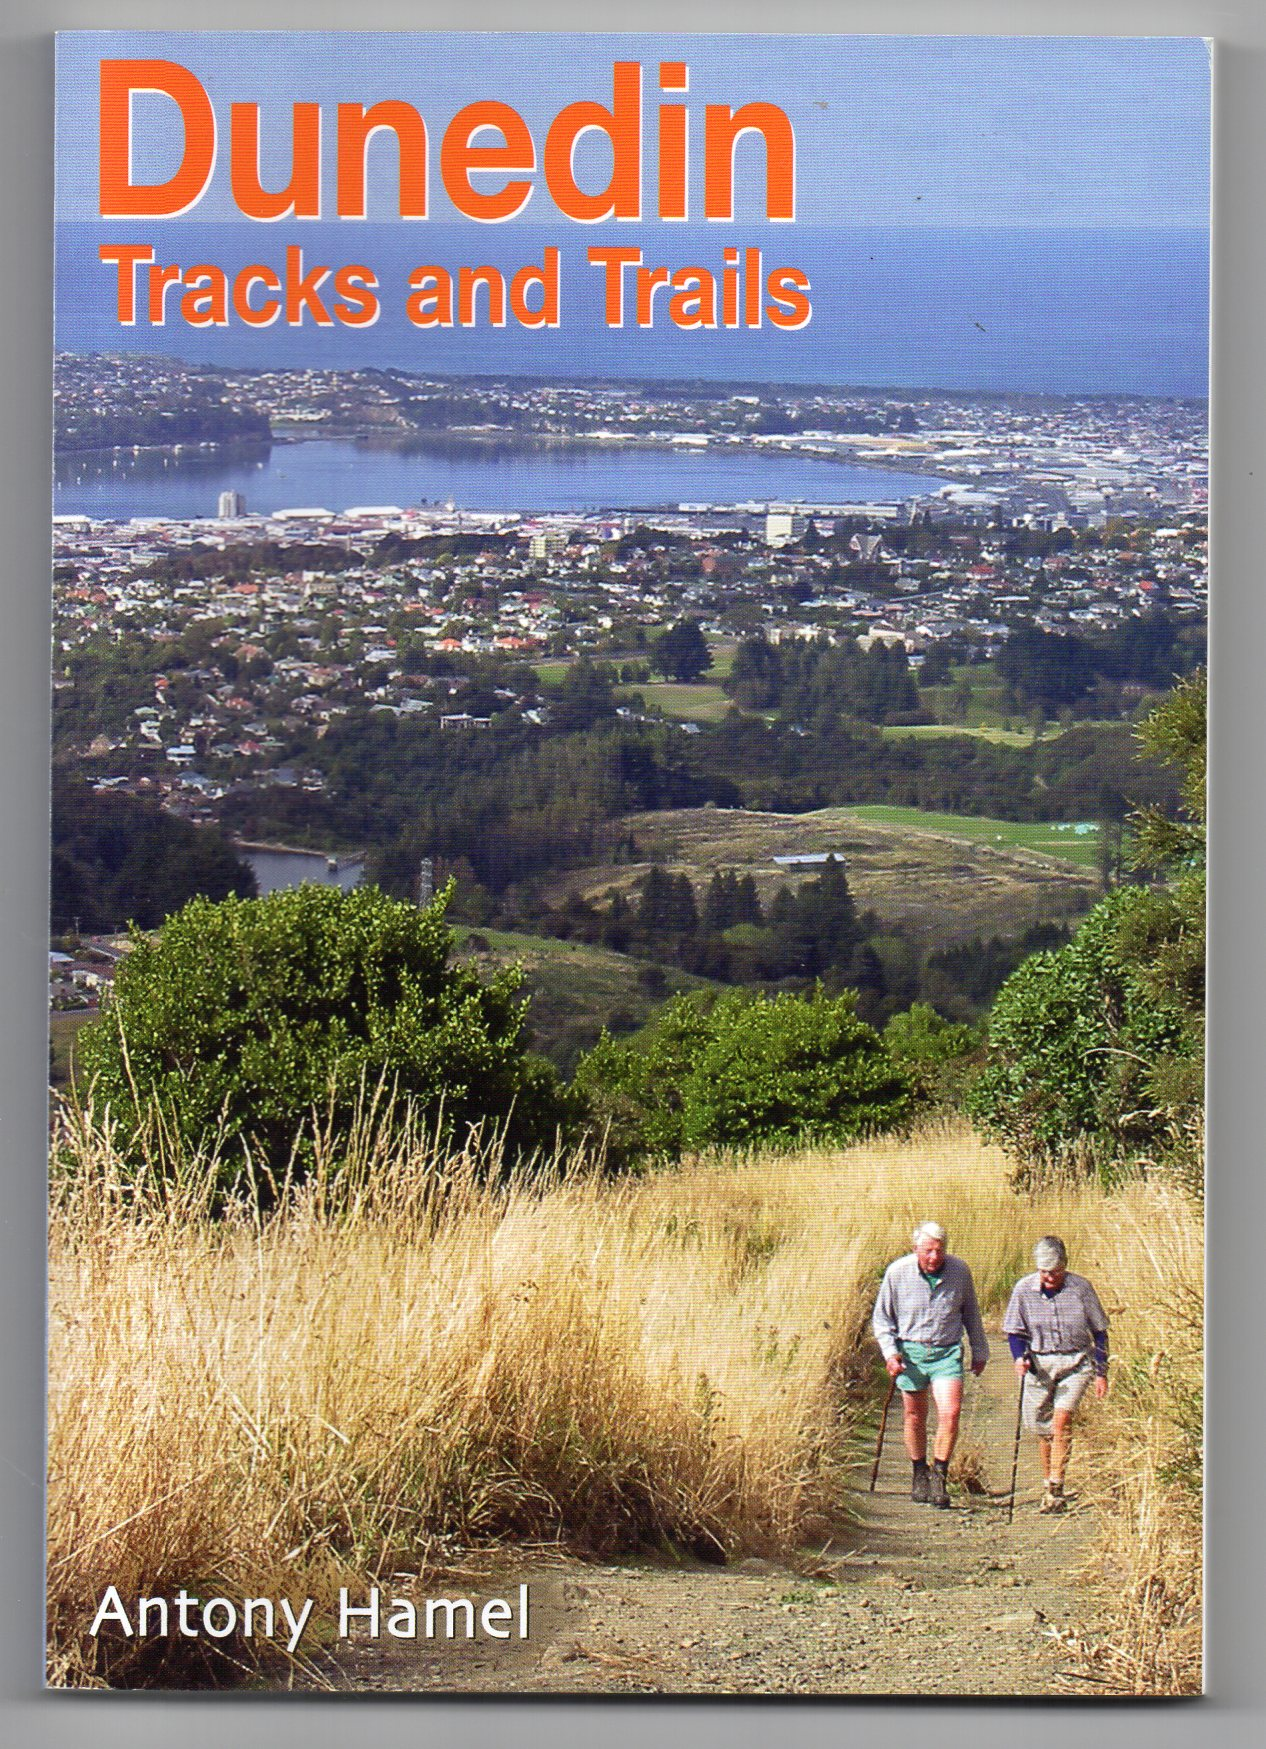 Image for Dunedin Tracks and Trails - An Illustrated Guide to Dunedin Walks, Tramps and Mountain Bike Routes